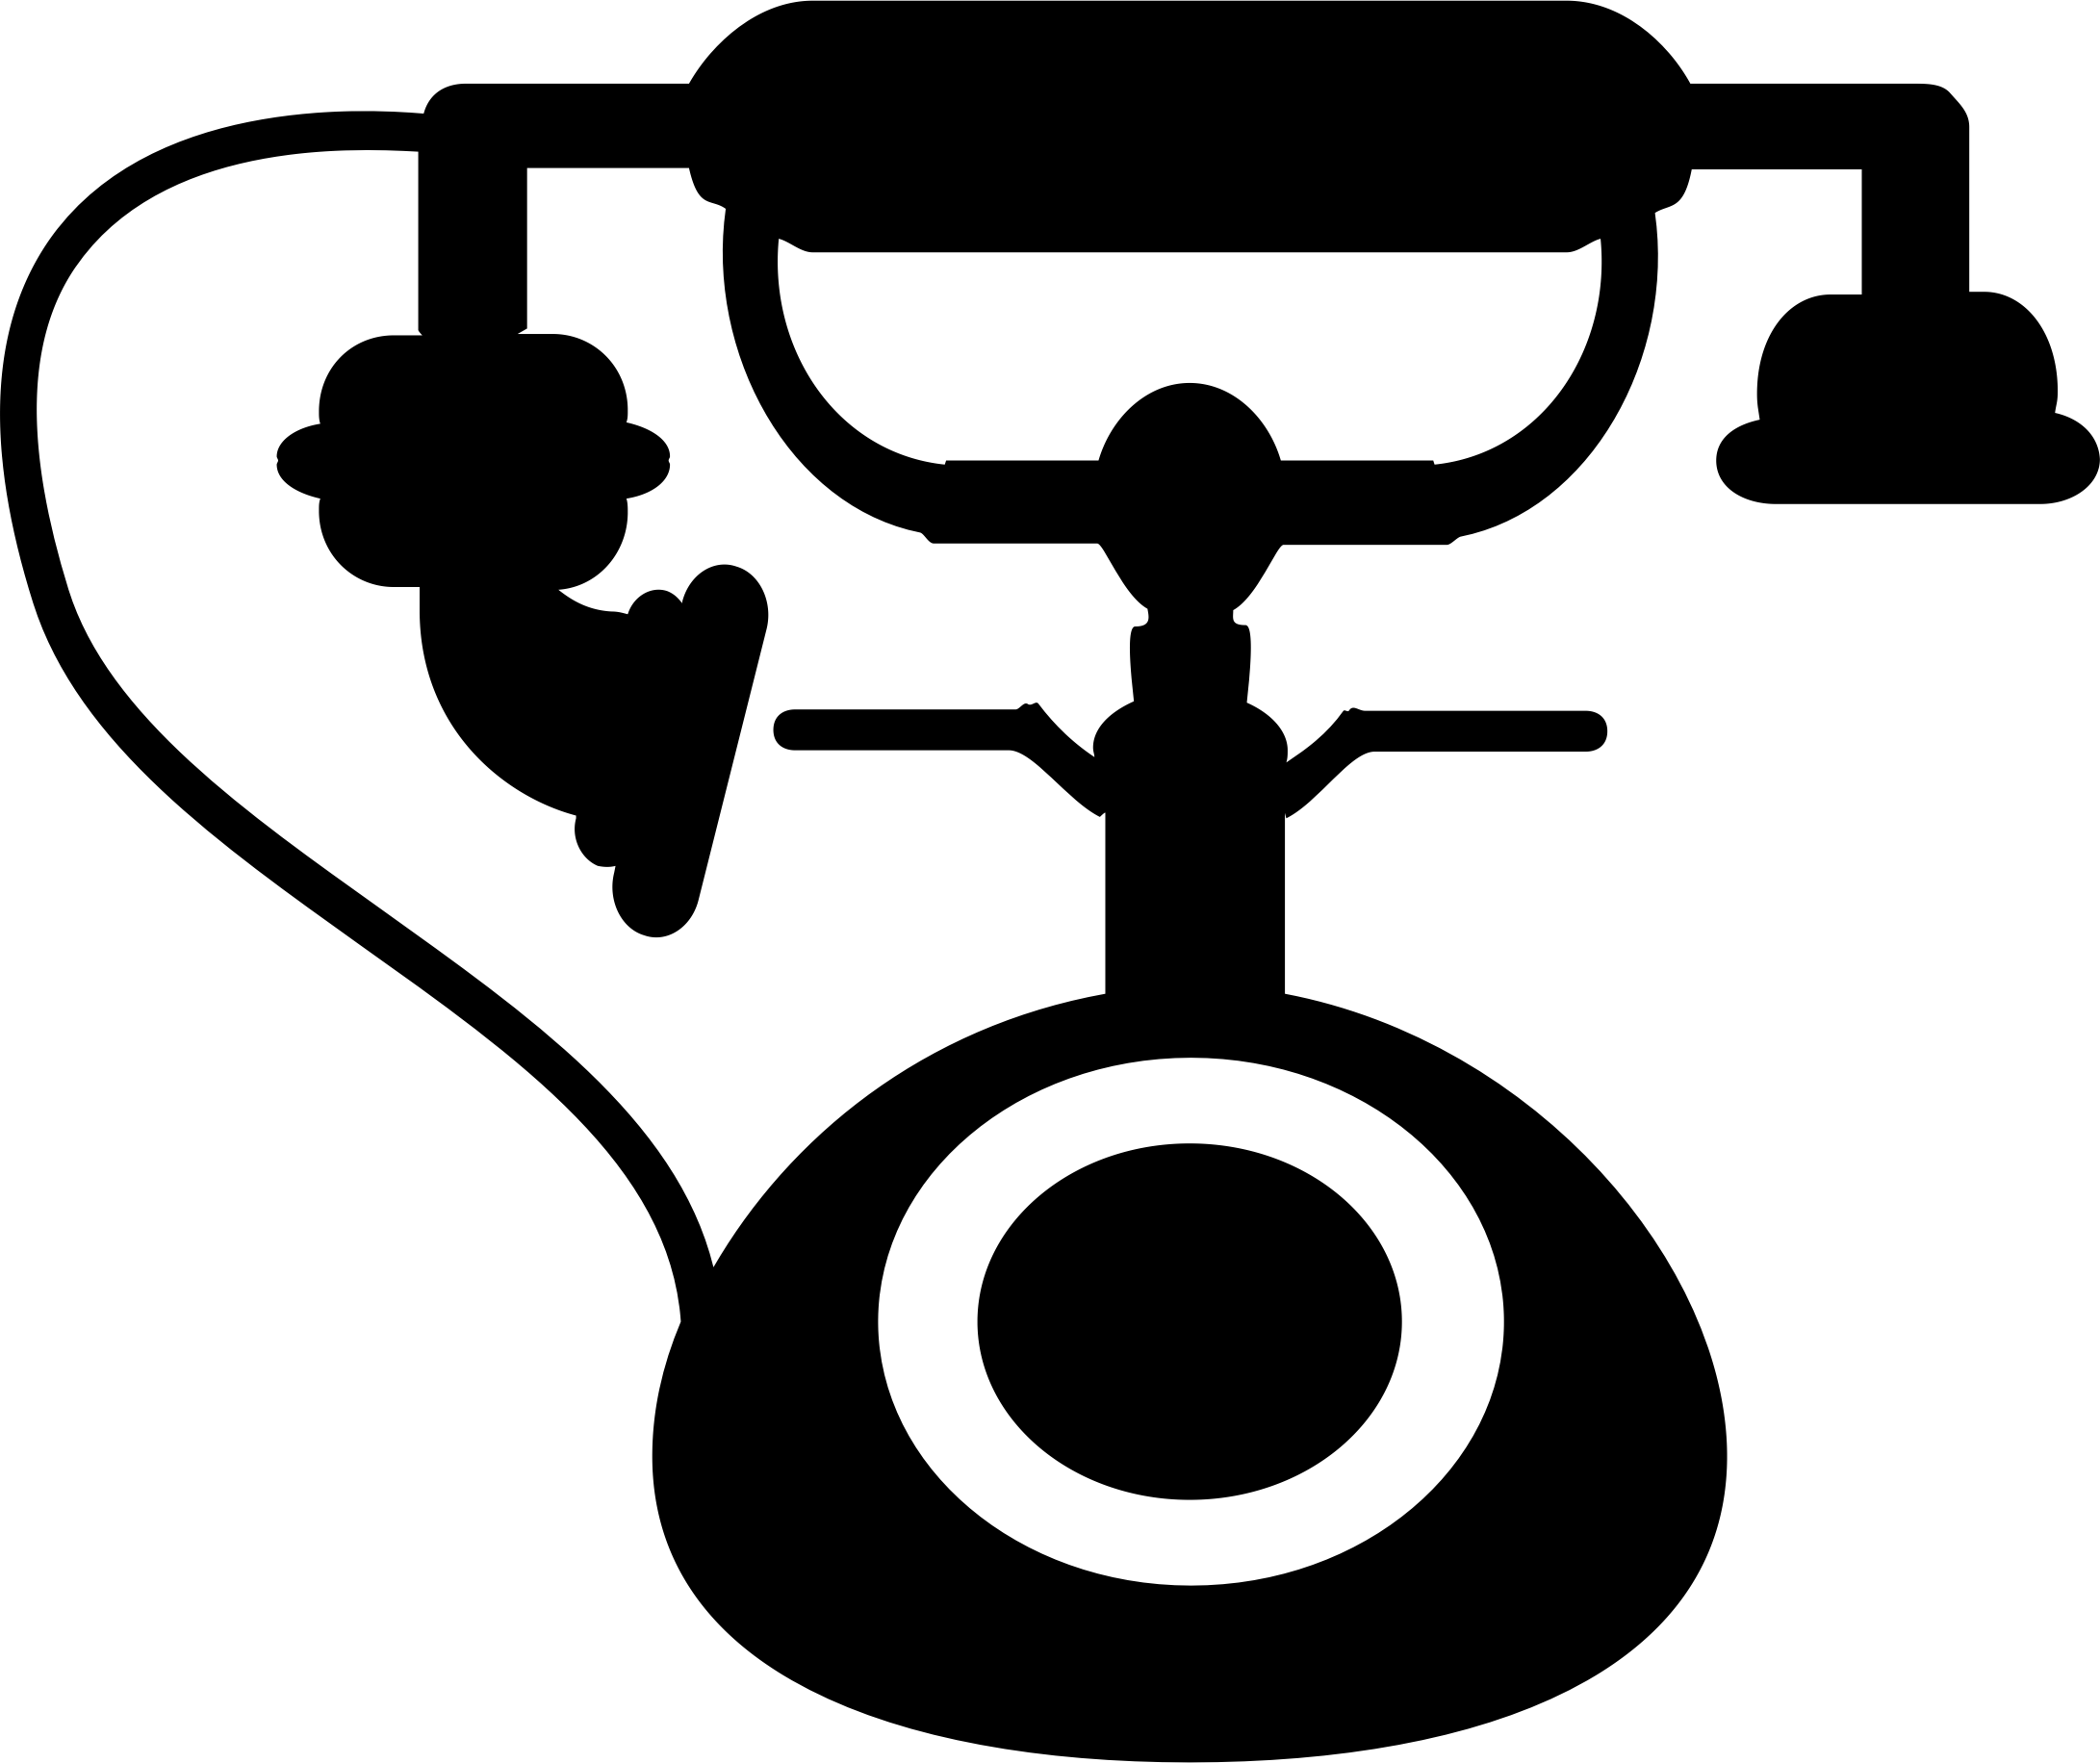 Vintage phone transparent png. Telephone clipart telephone icon